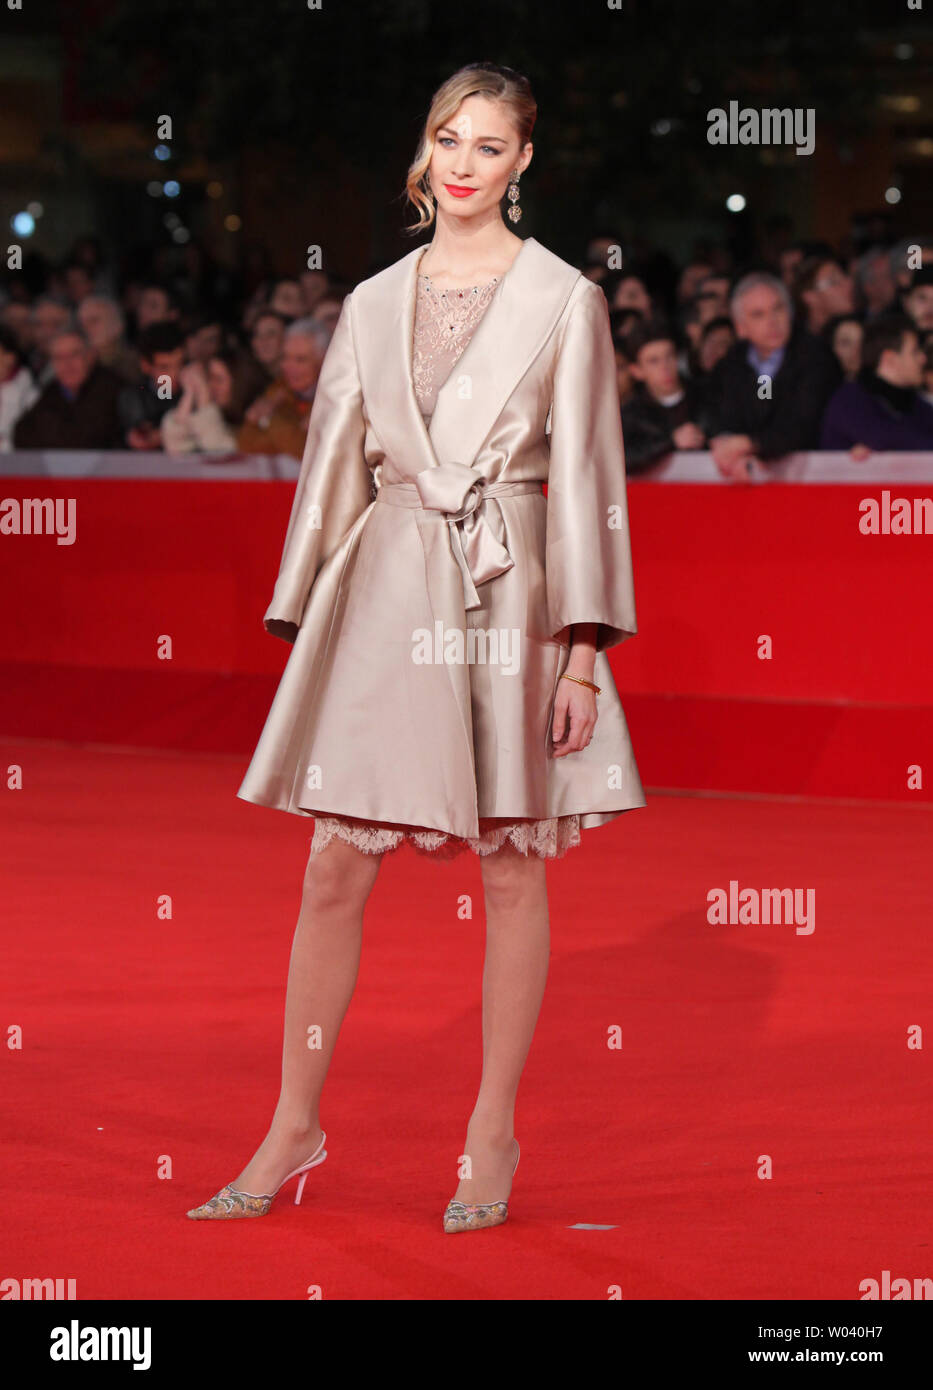 Beatrice Borromeo arrives on the red carpet before the screening of a digitally restored version of the 1960 classic film 'La Dolce Vita' during the 5th Rome International Film Festival in Rome on October 30, 2010.   UPI/David Silpa - Stock Image